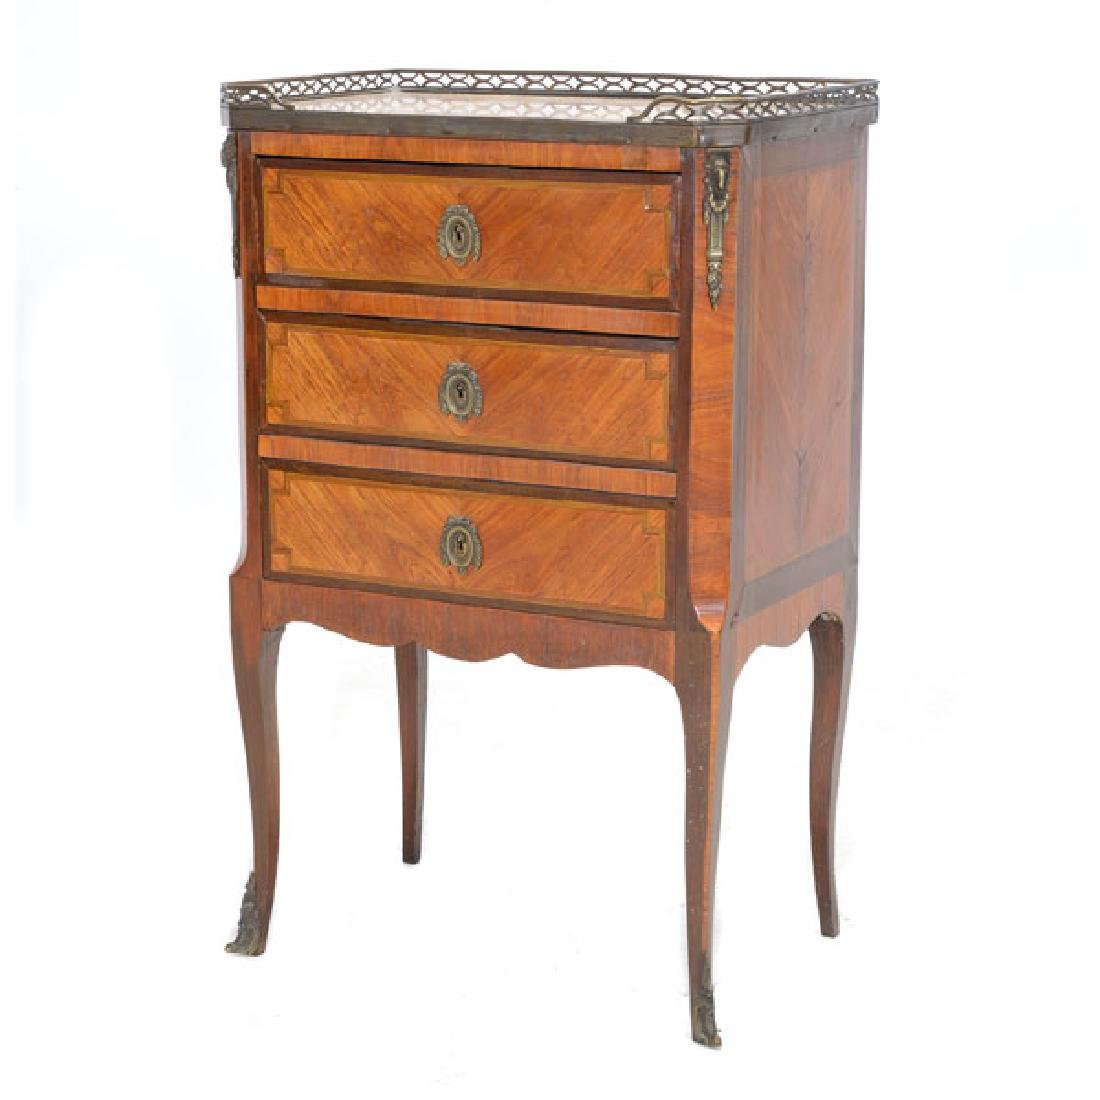 Louis XVI Style Kingwood Marquetry Commode with Breche